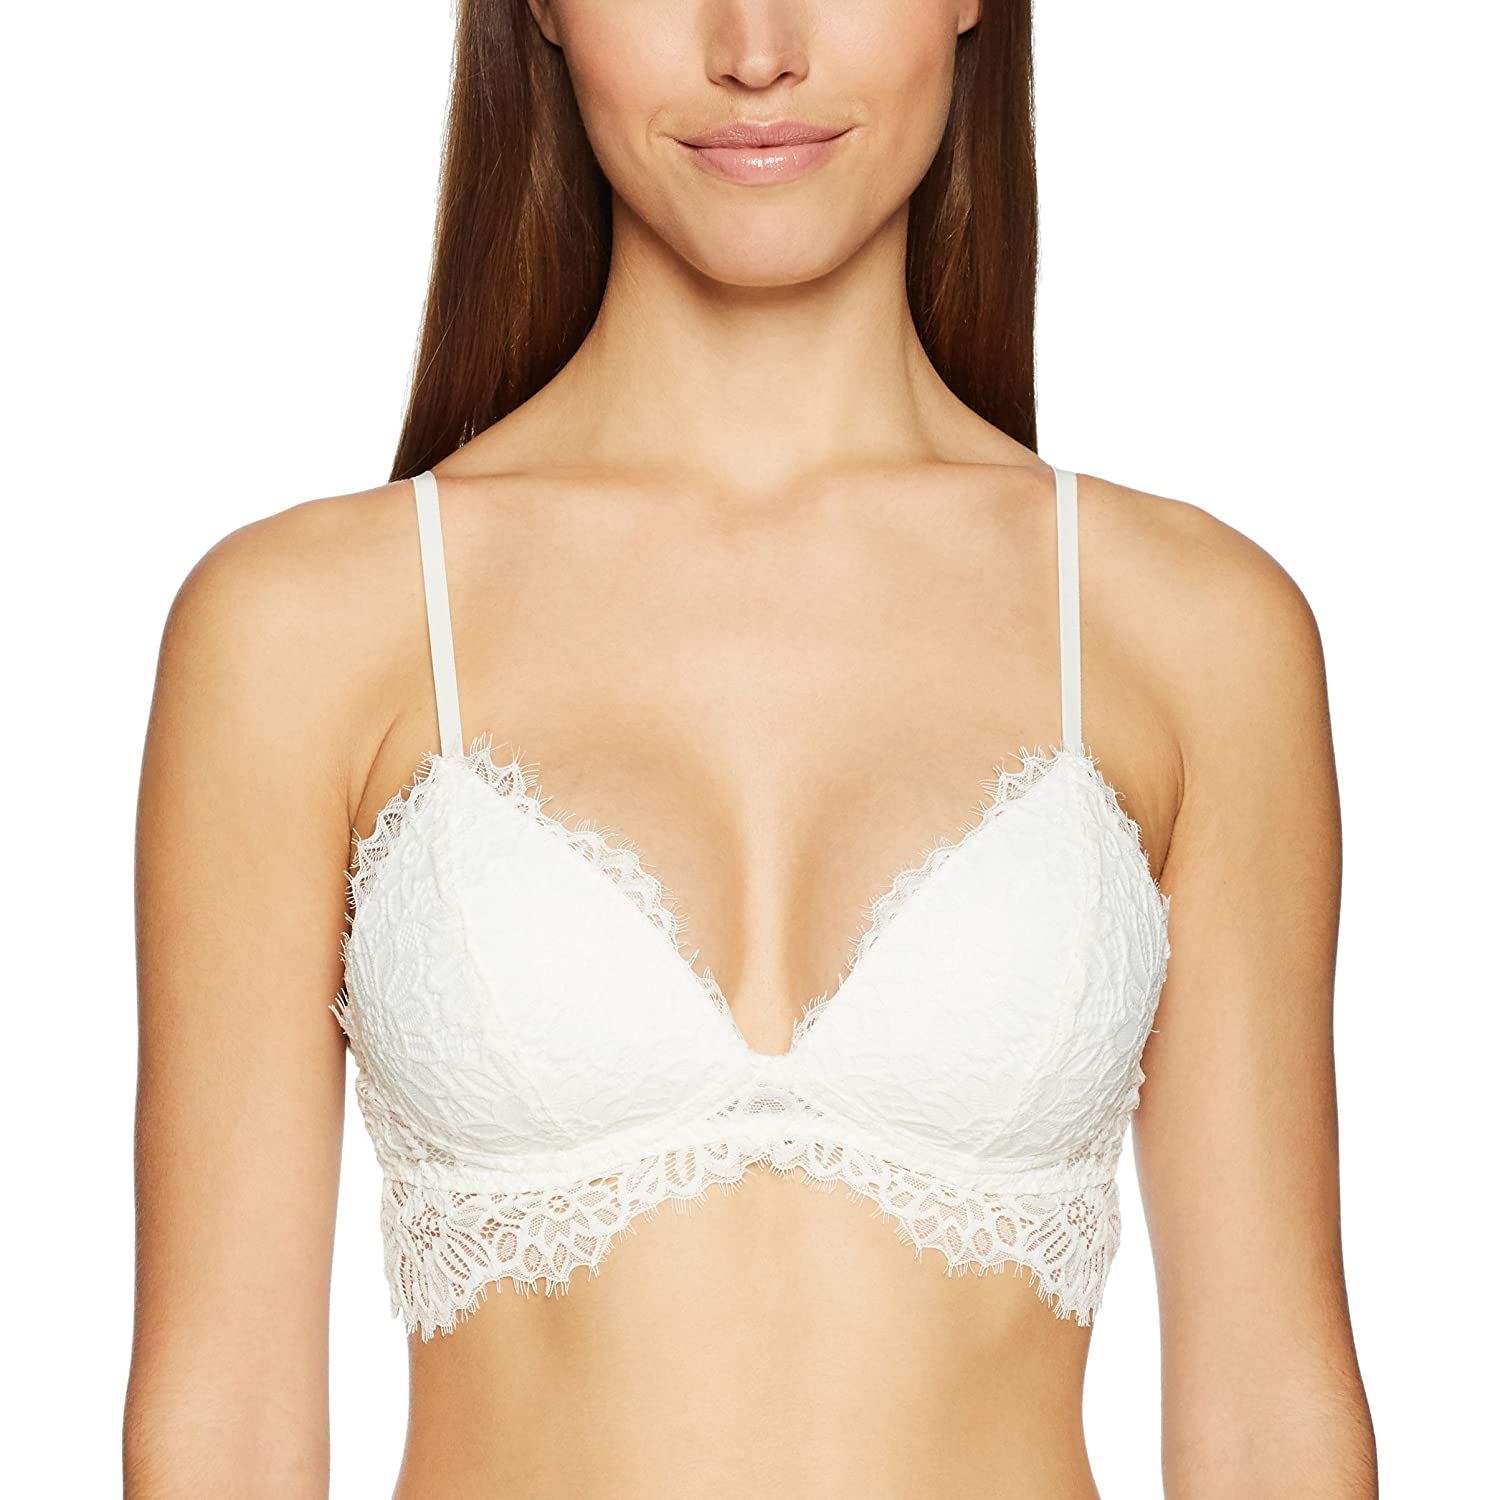 Mae Womens Standard Lighly Padded Eyelash Lace Bralette